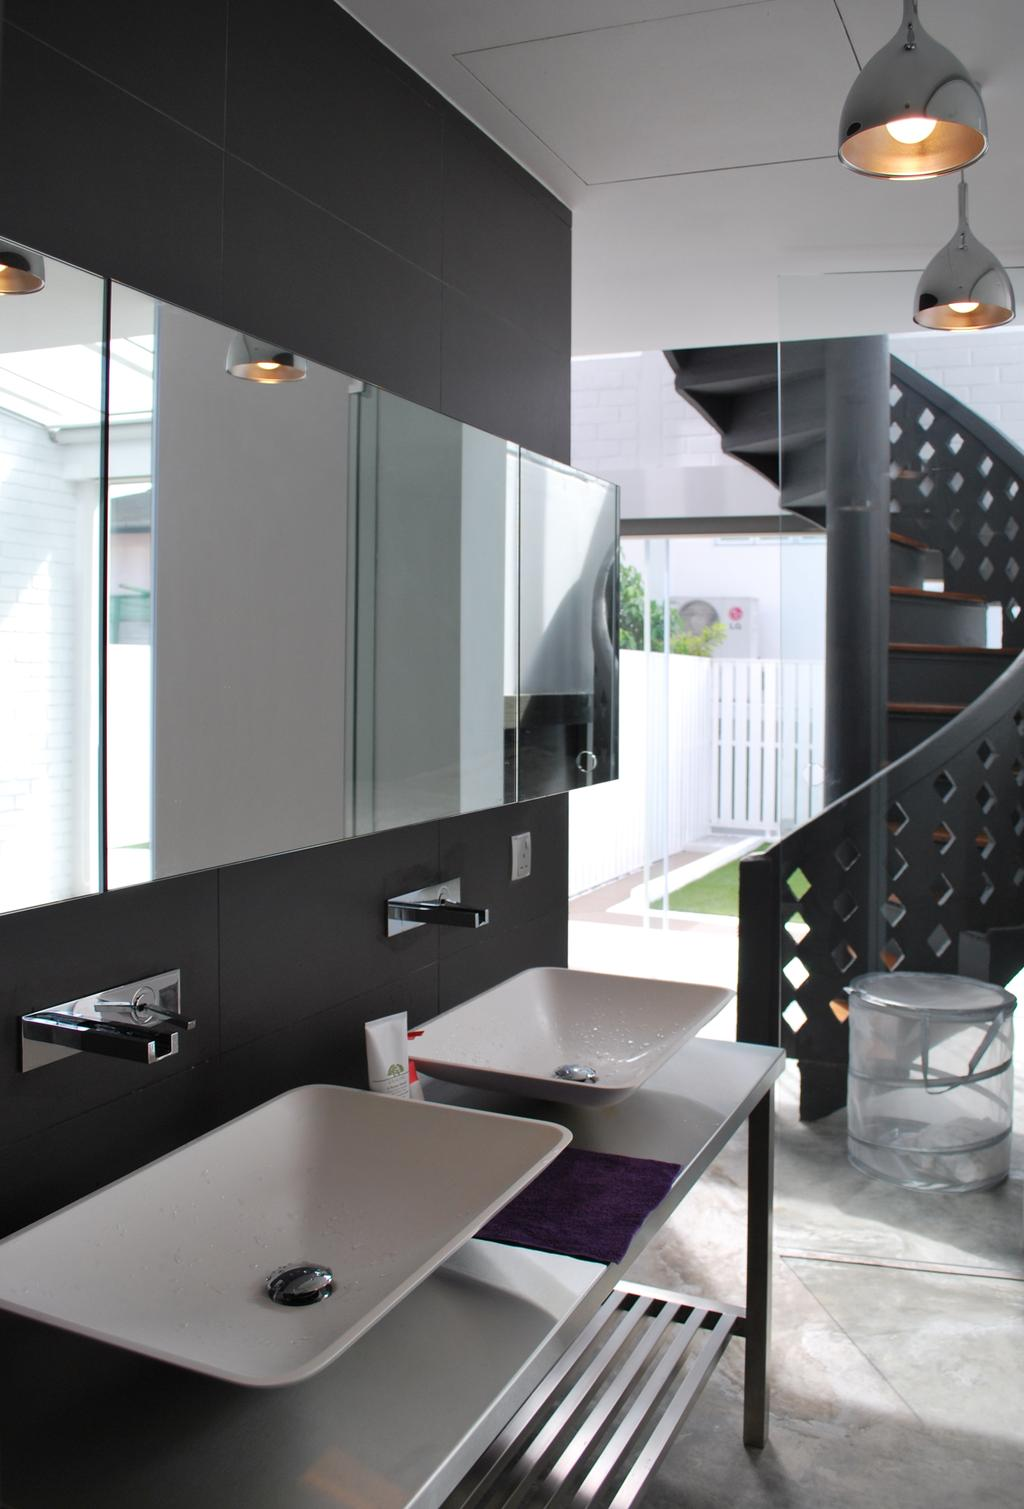 Transitional, Landed, Bathroom, Tagore Avenue, Architect, Czarl Architects, Chair, Furniture